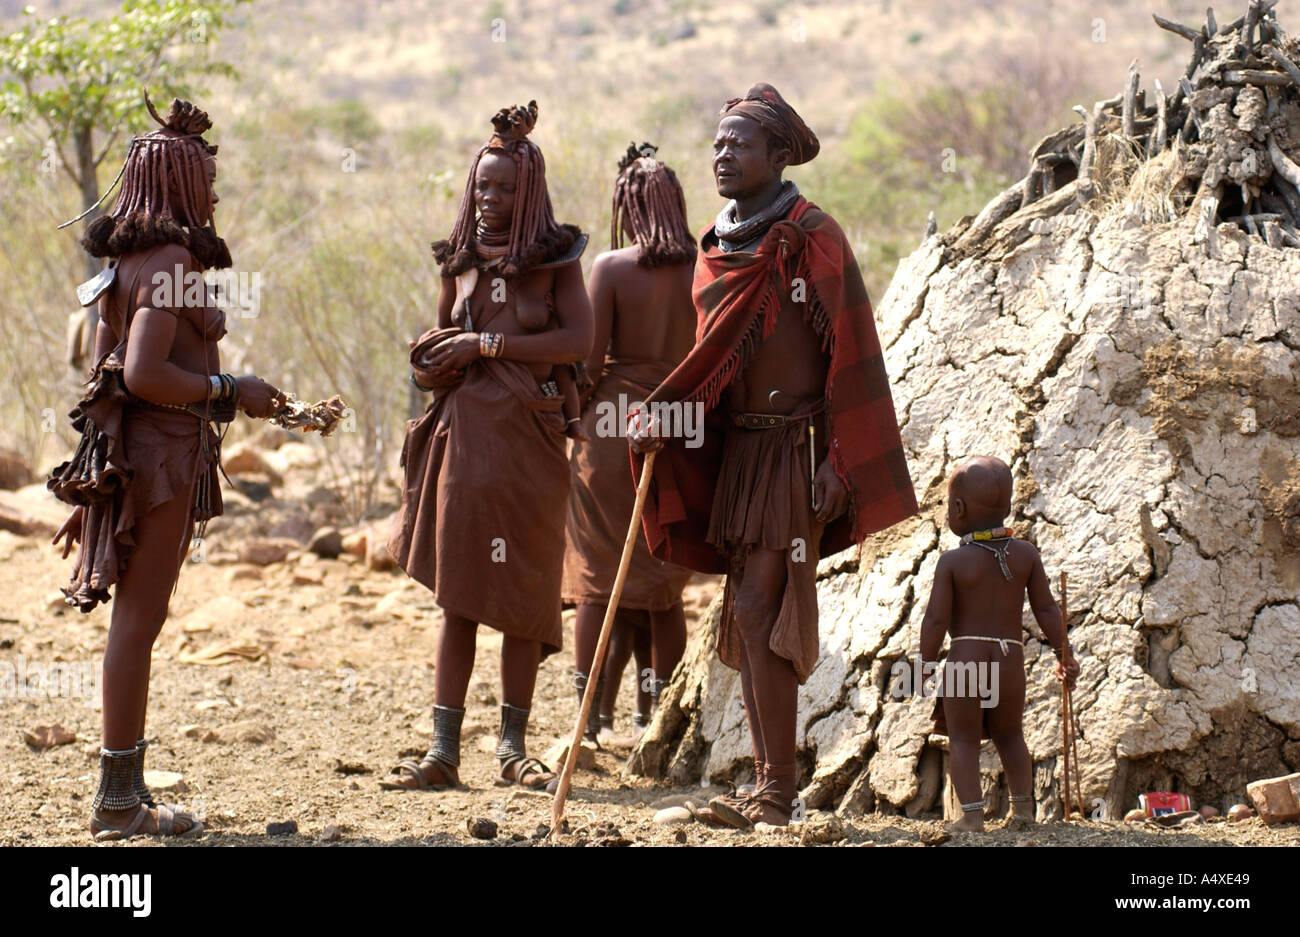 Himba chief with family - Stock Image